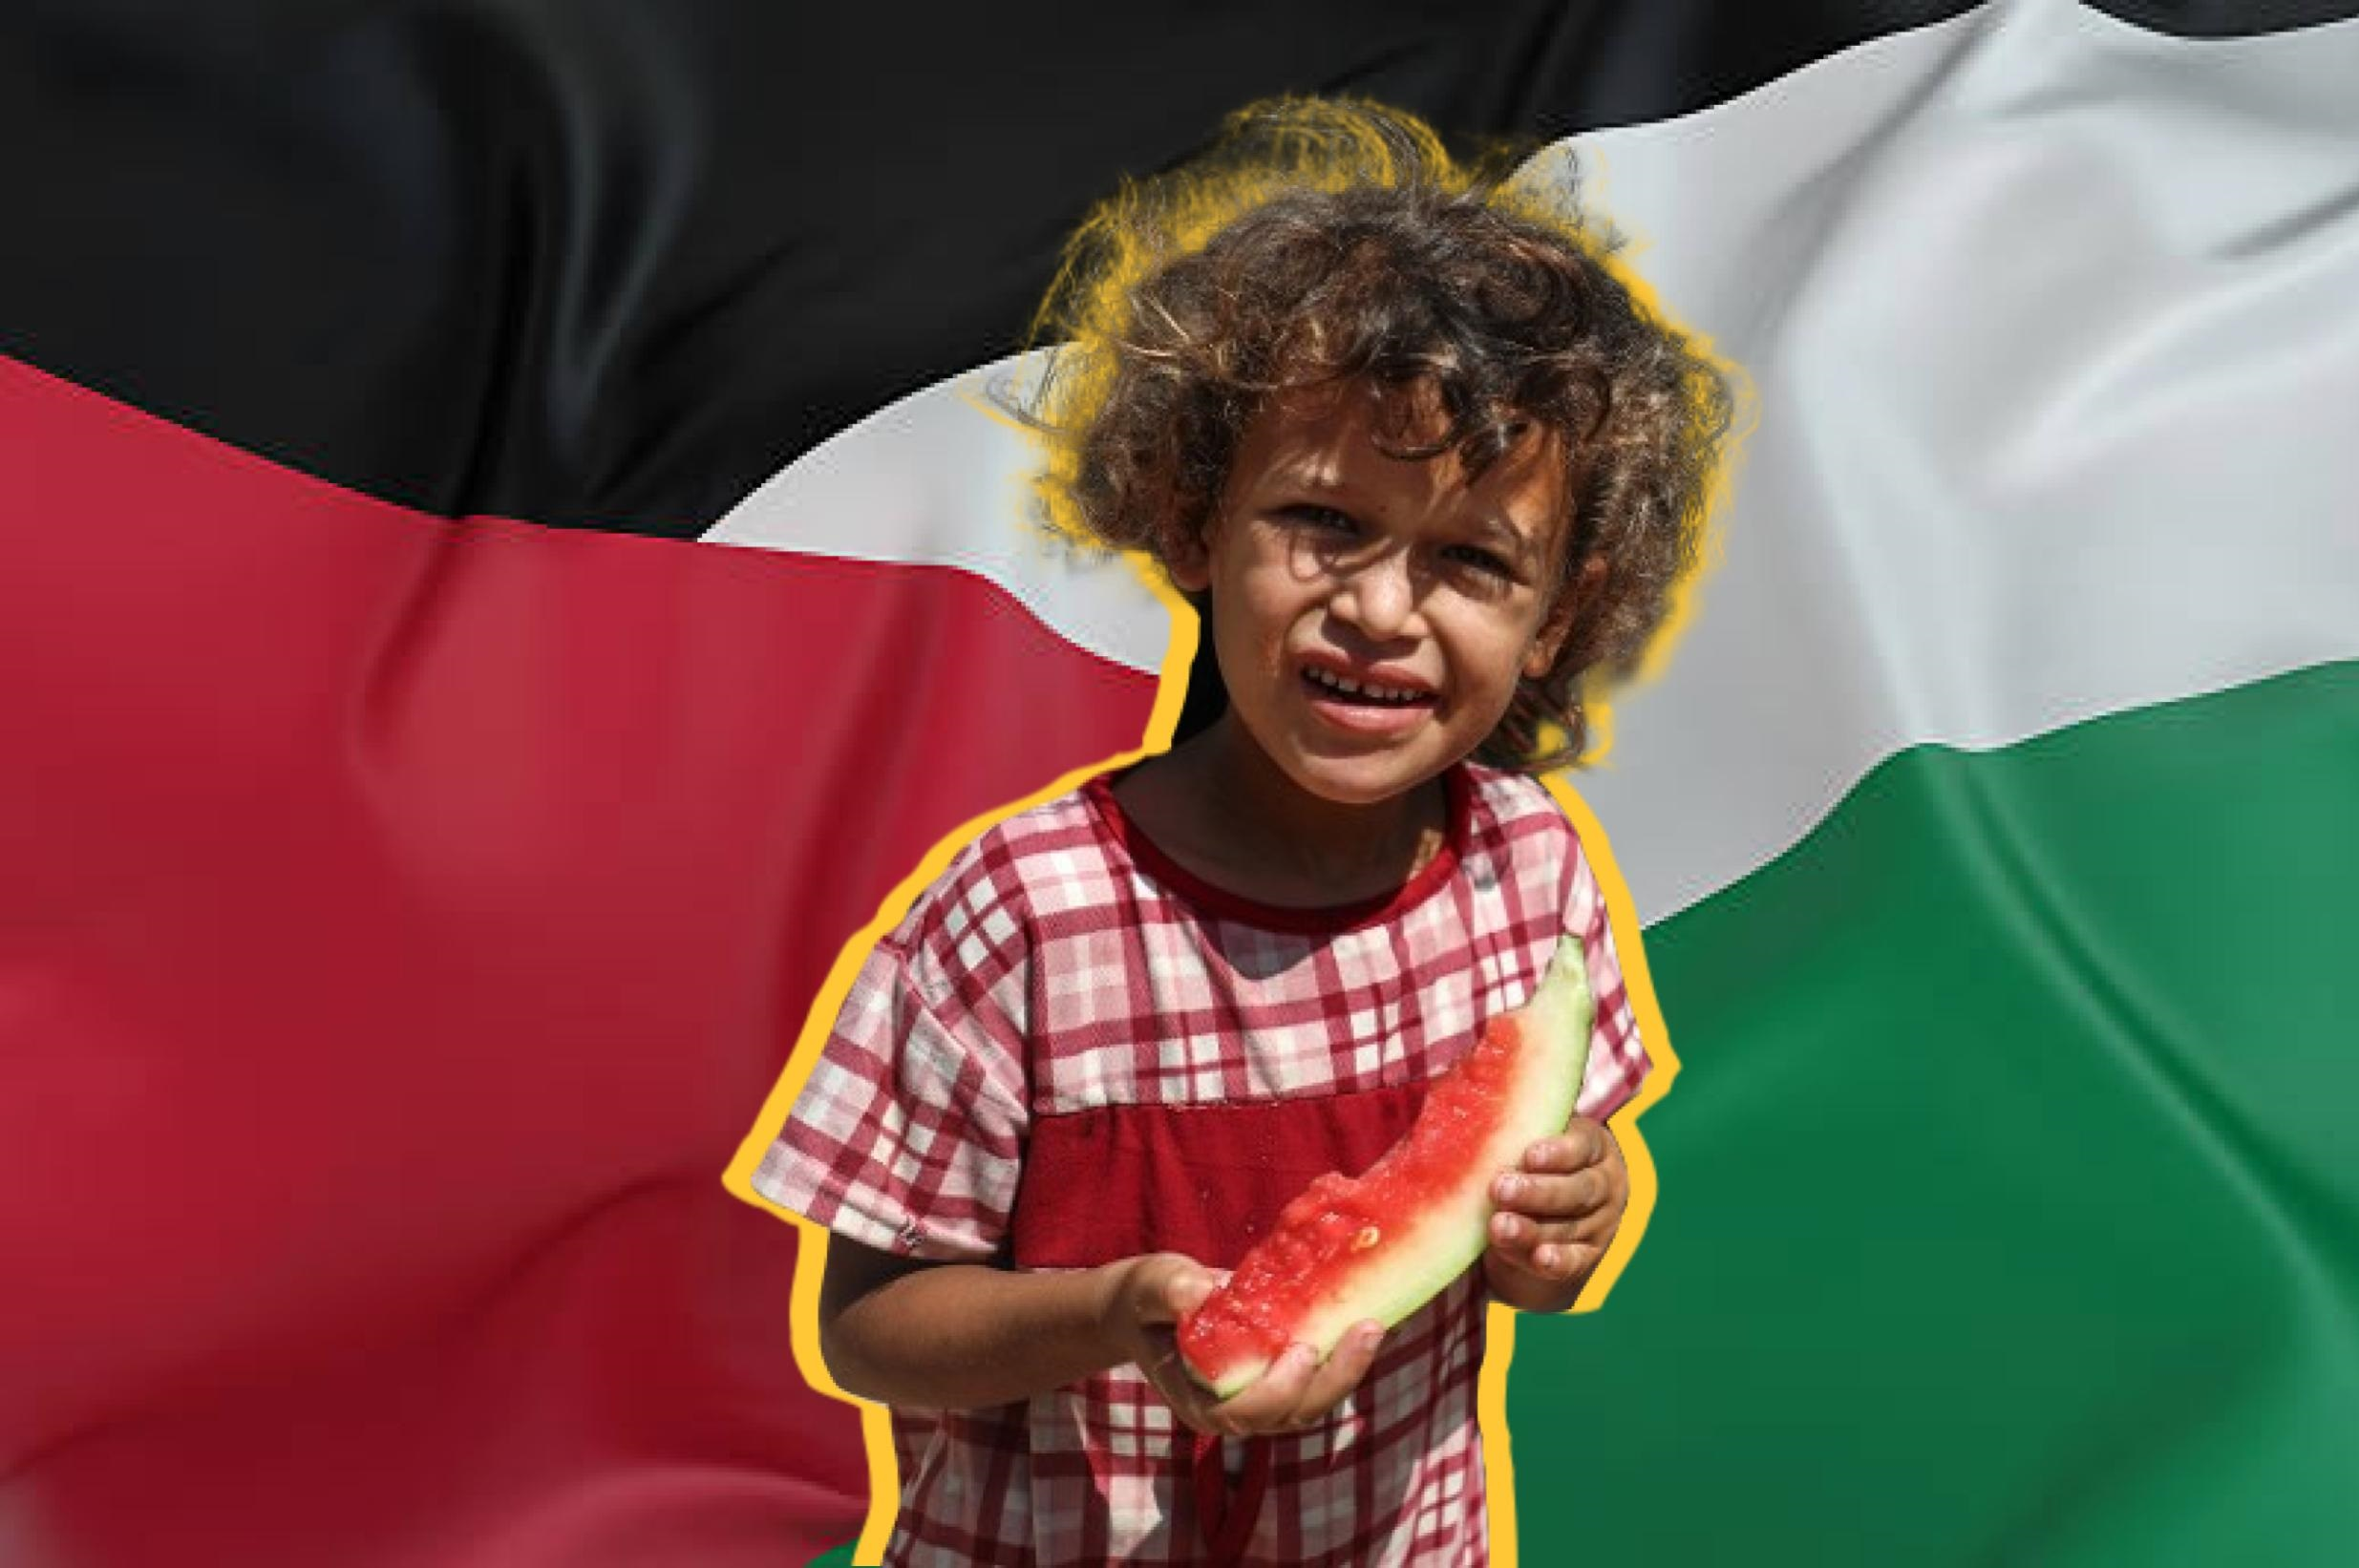 The watermelon shares the same colours as the Palestinian flag